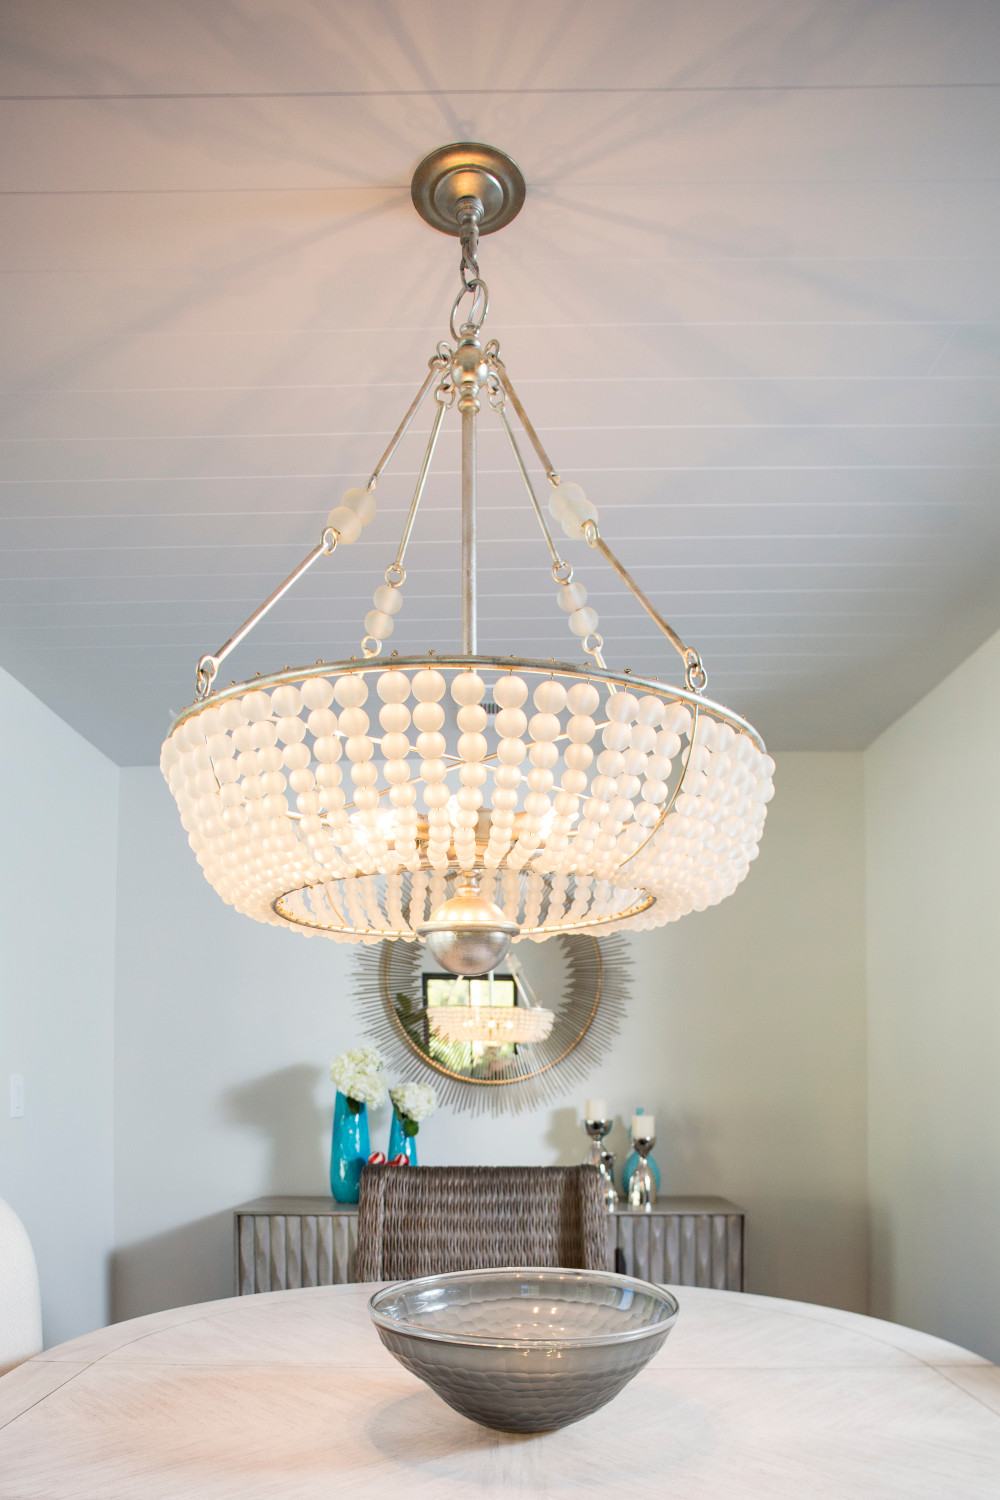 Dining room with white walls, galls white chandelier, shiplap ceiling and round gold wall mirror.